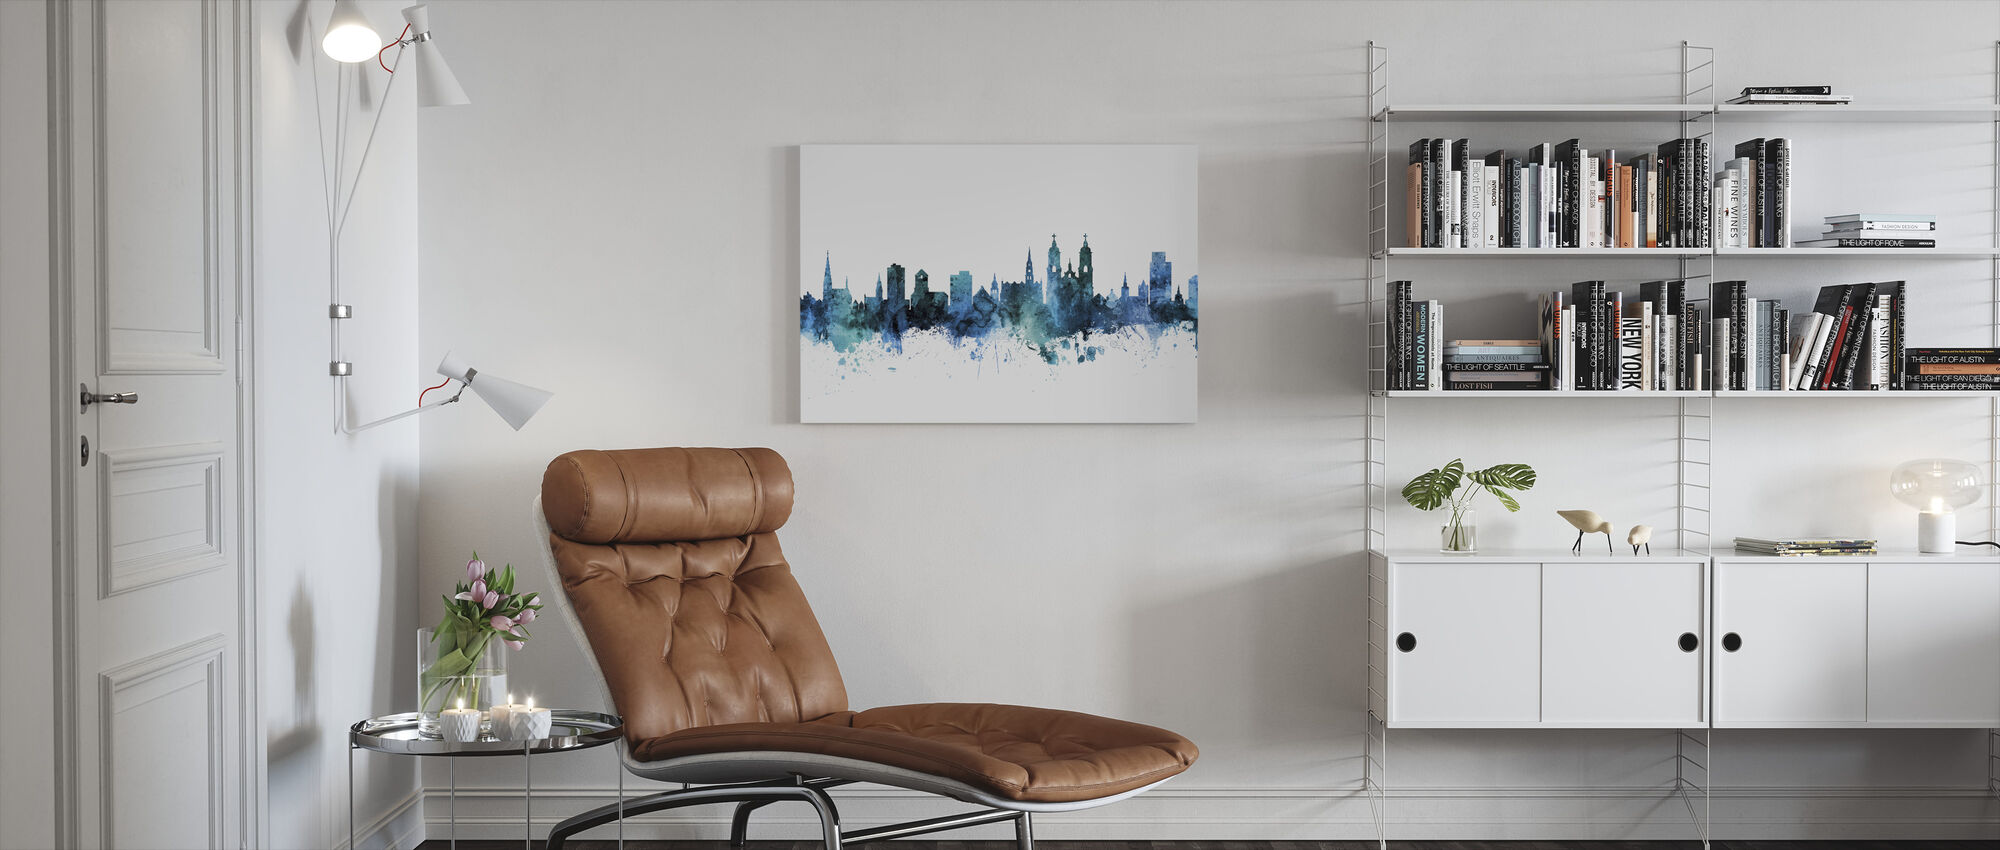 St Gallen Switzerland Skyline - Canvas print - Living Room